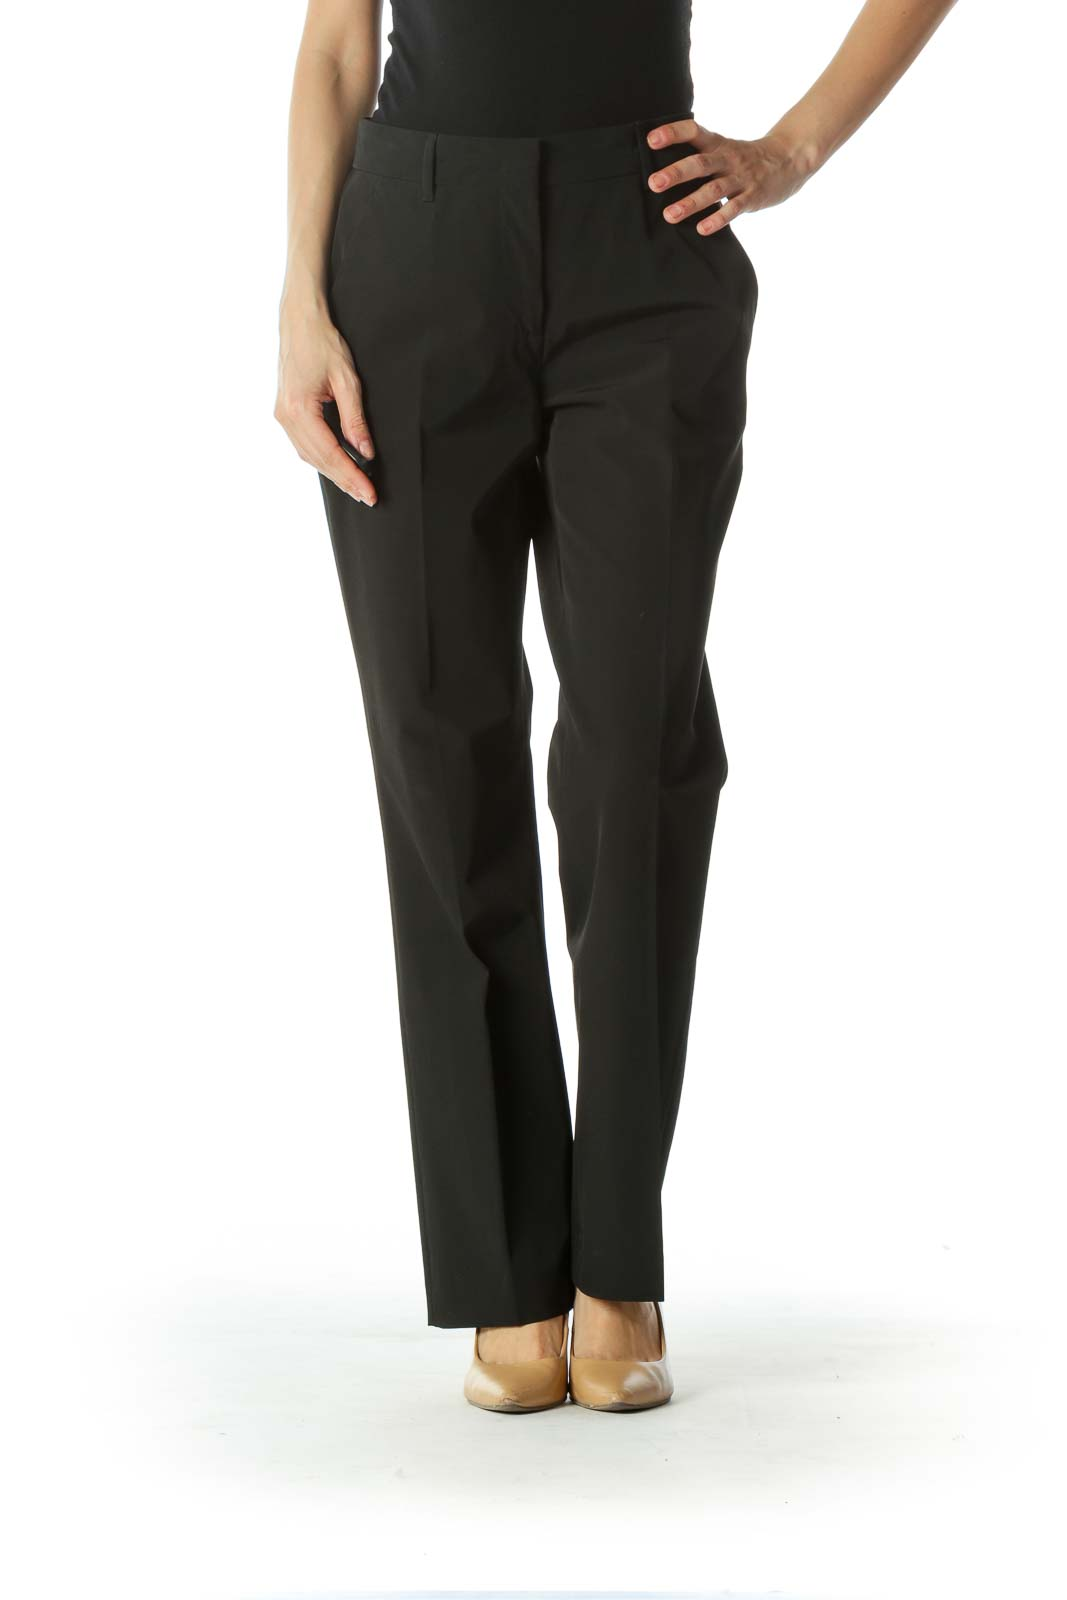 Black Designer Mid-Rise Dress Pant